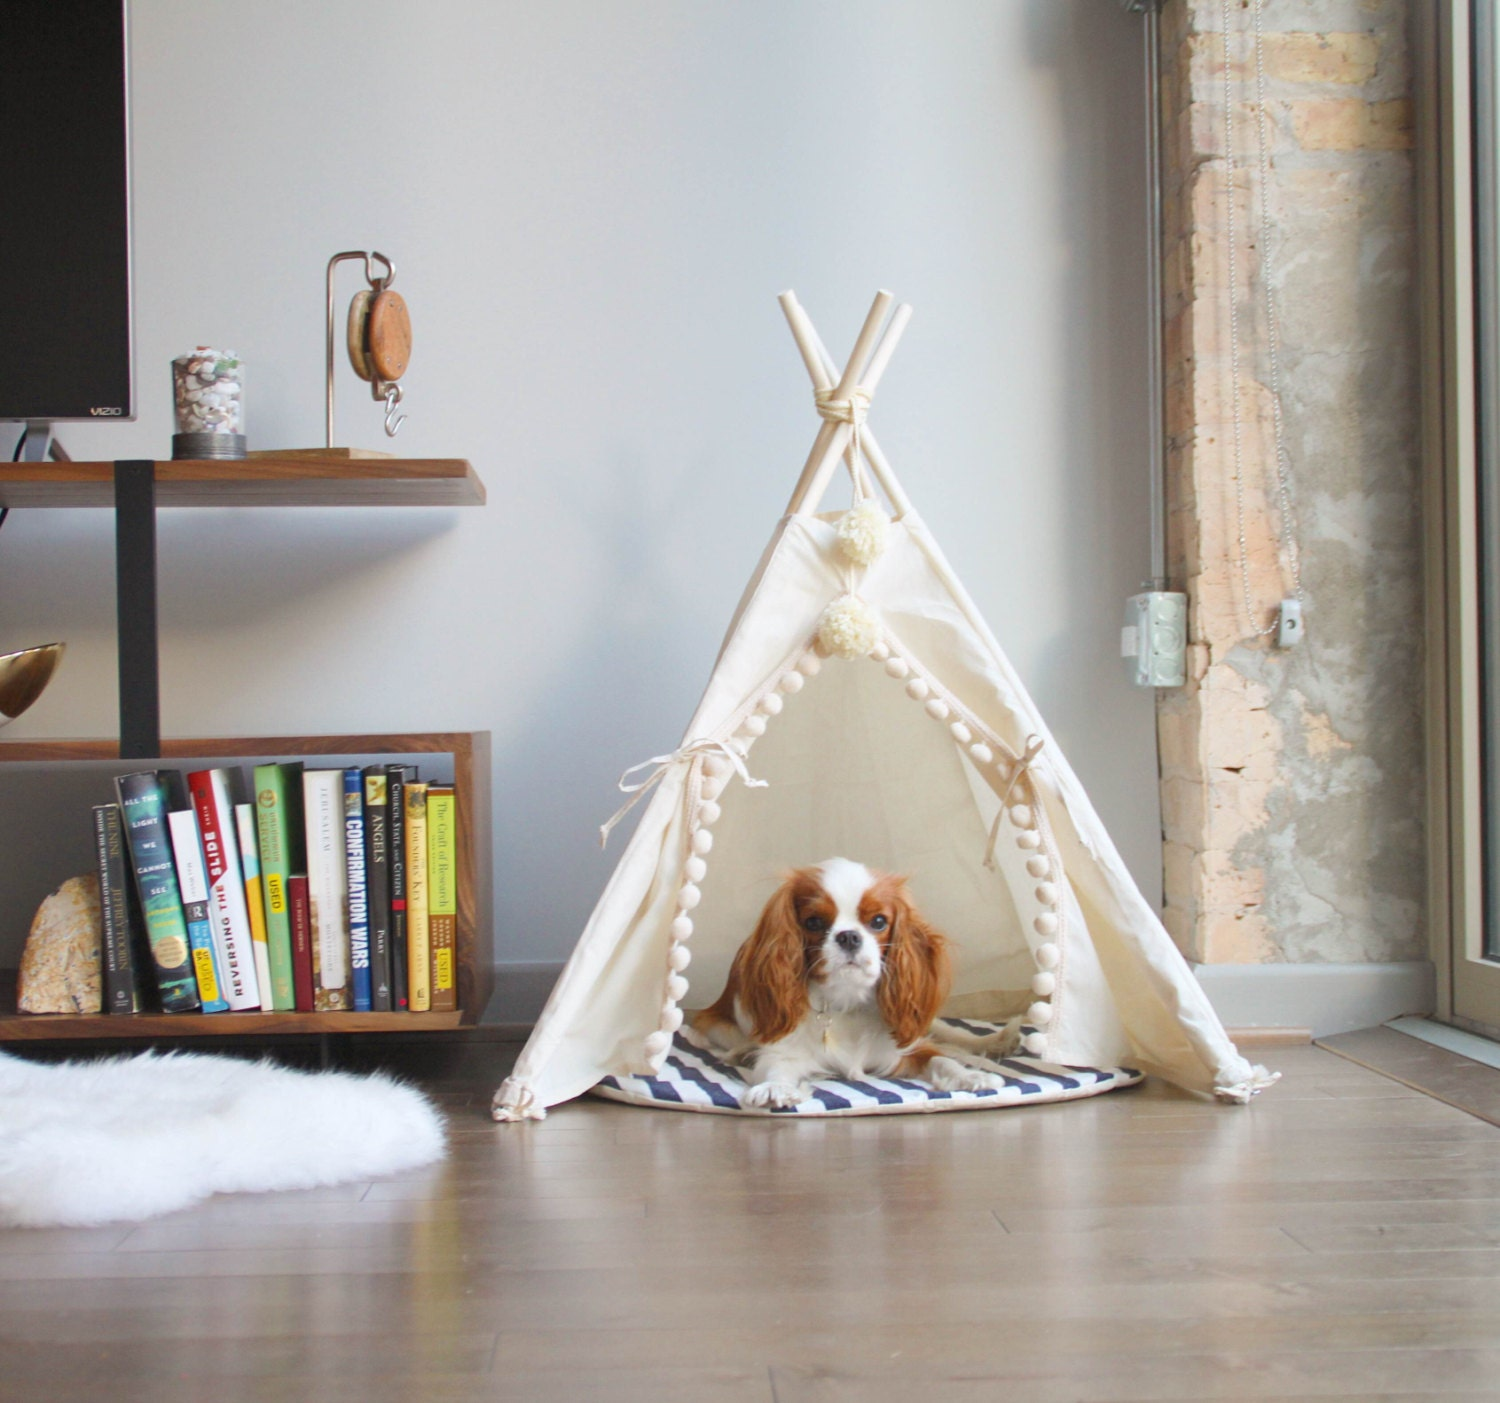 ?zoom & Pet tipi with poles and pad: 4 pole pet tipi teepee tepee